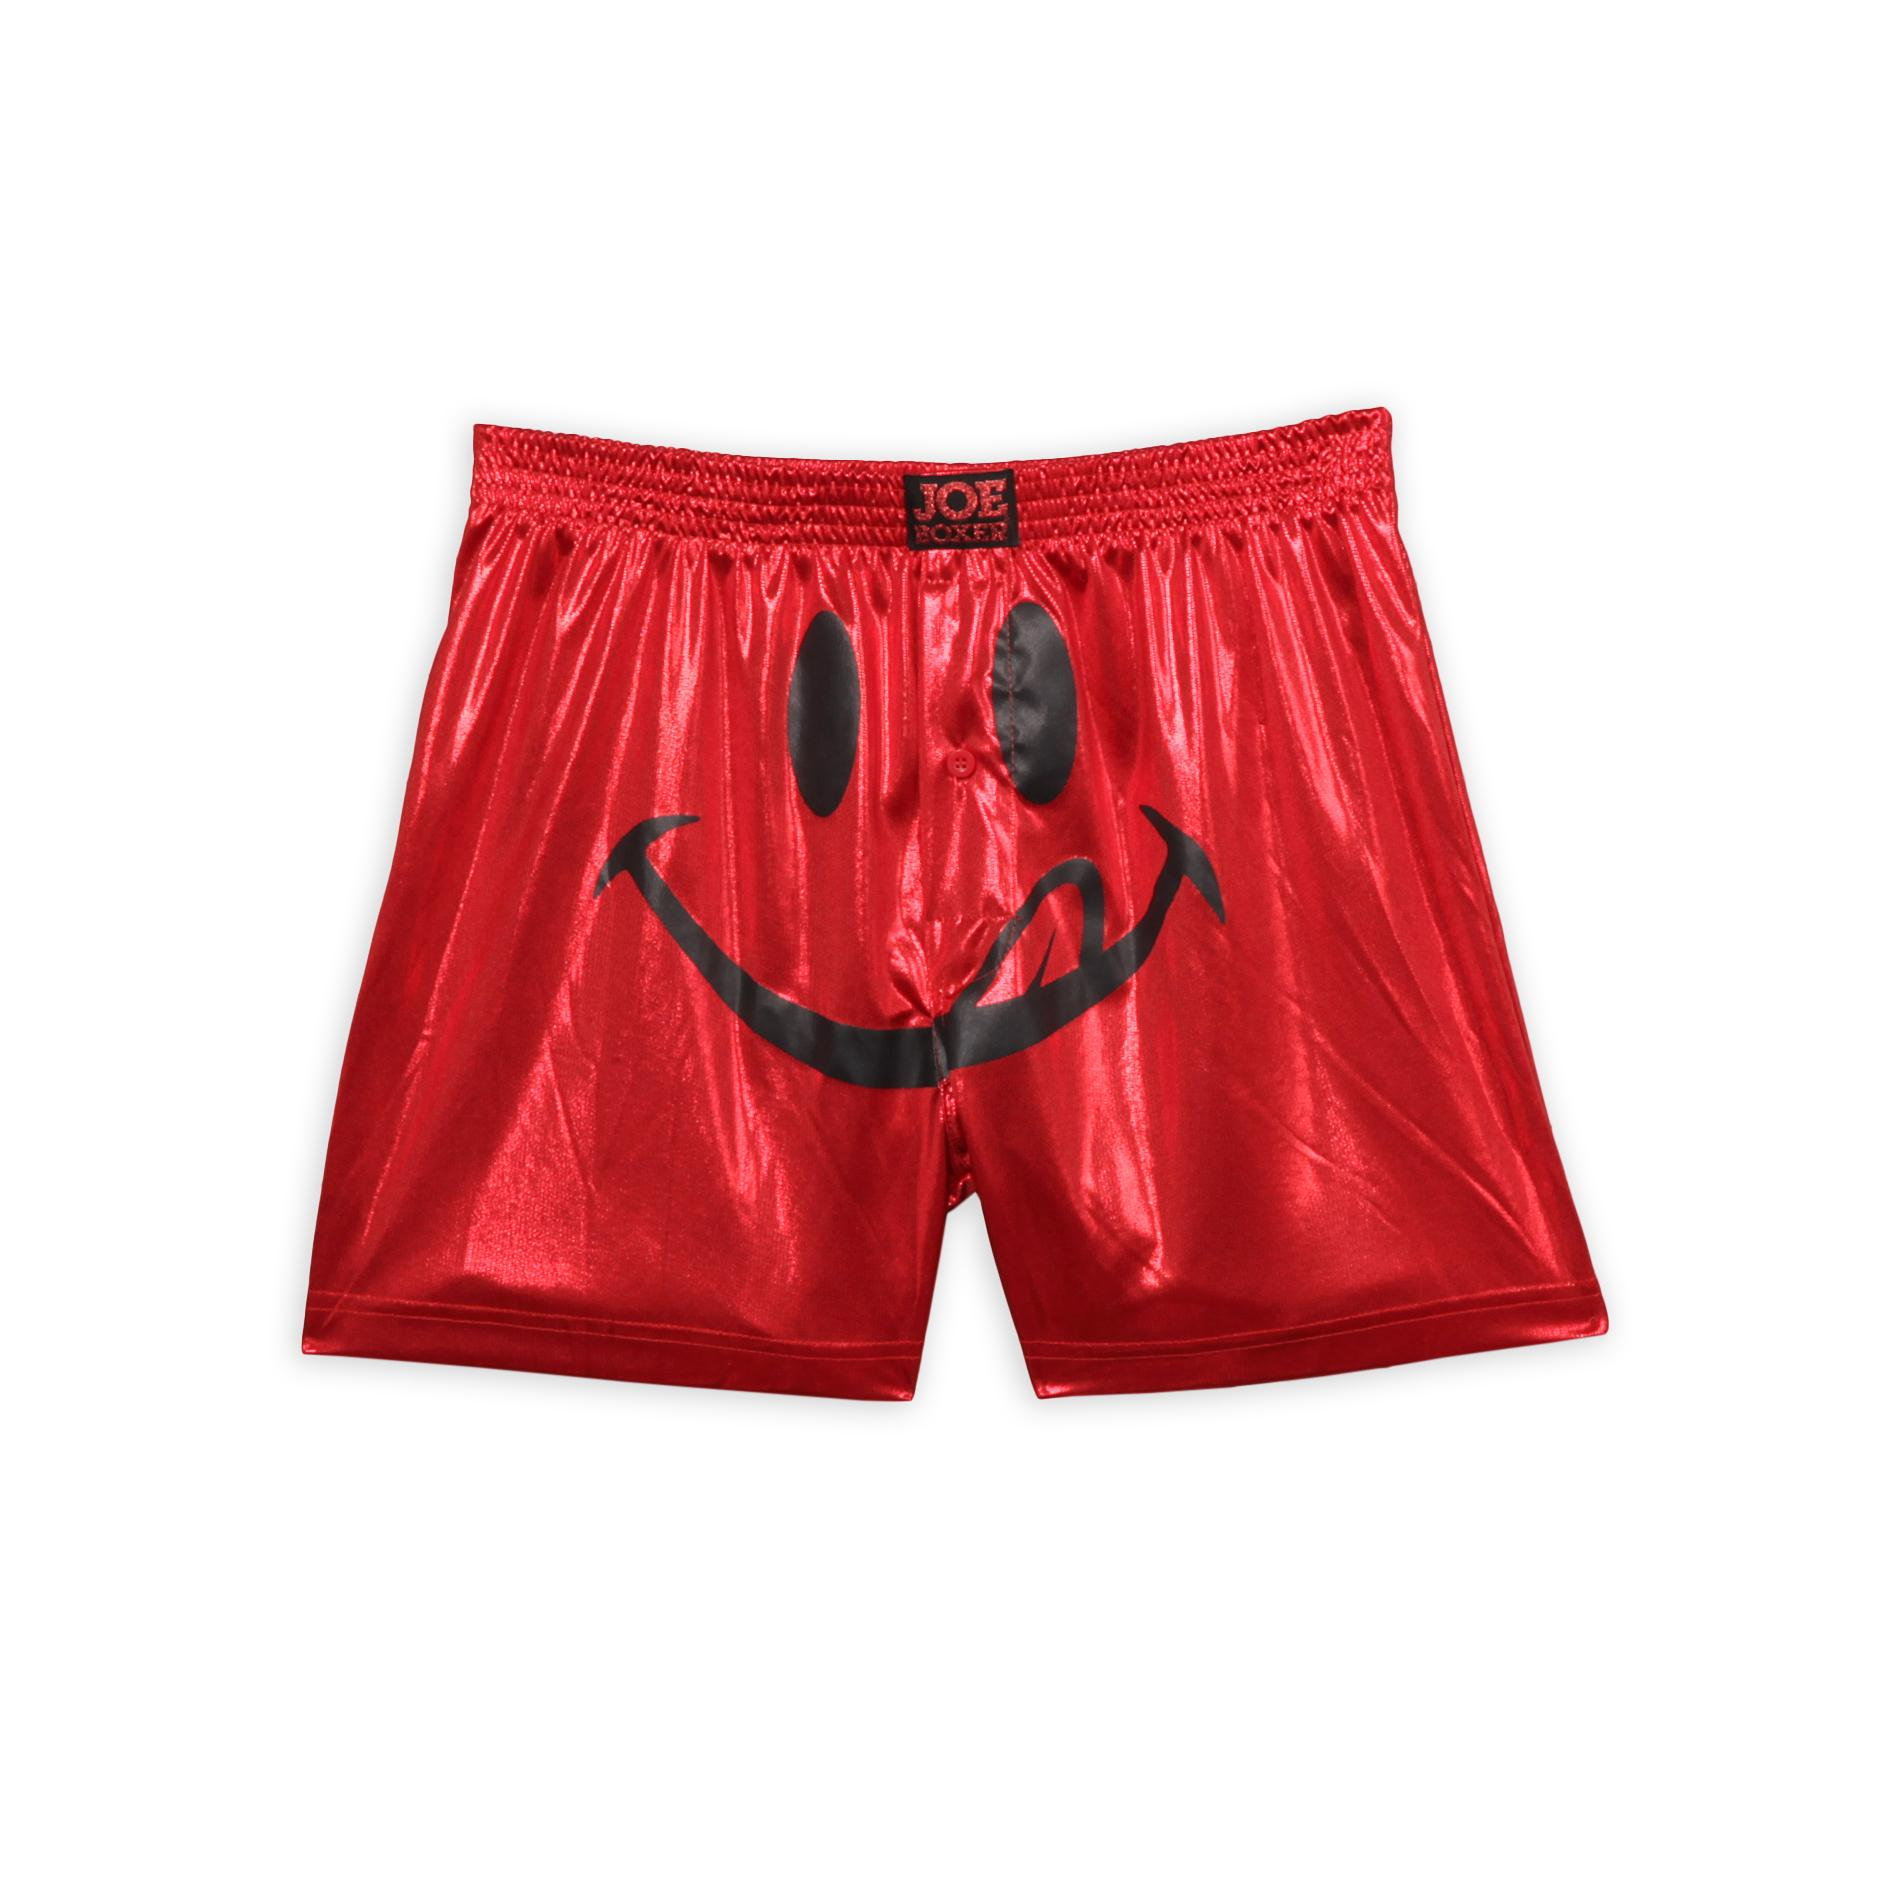 Joe Boxer Men' Satin Boxers